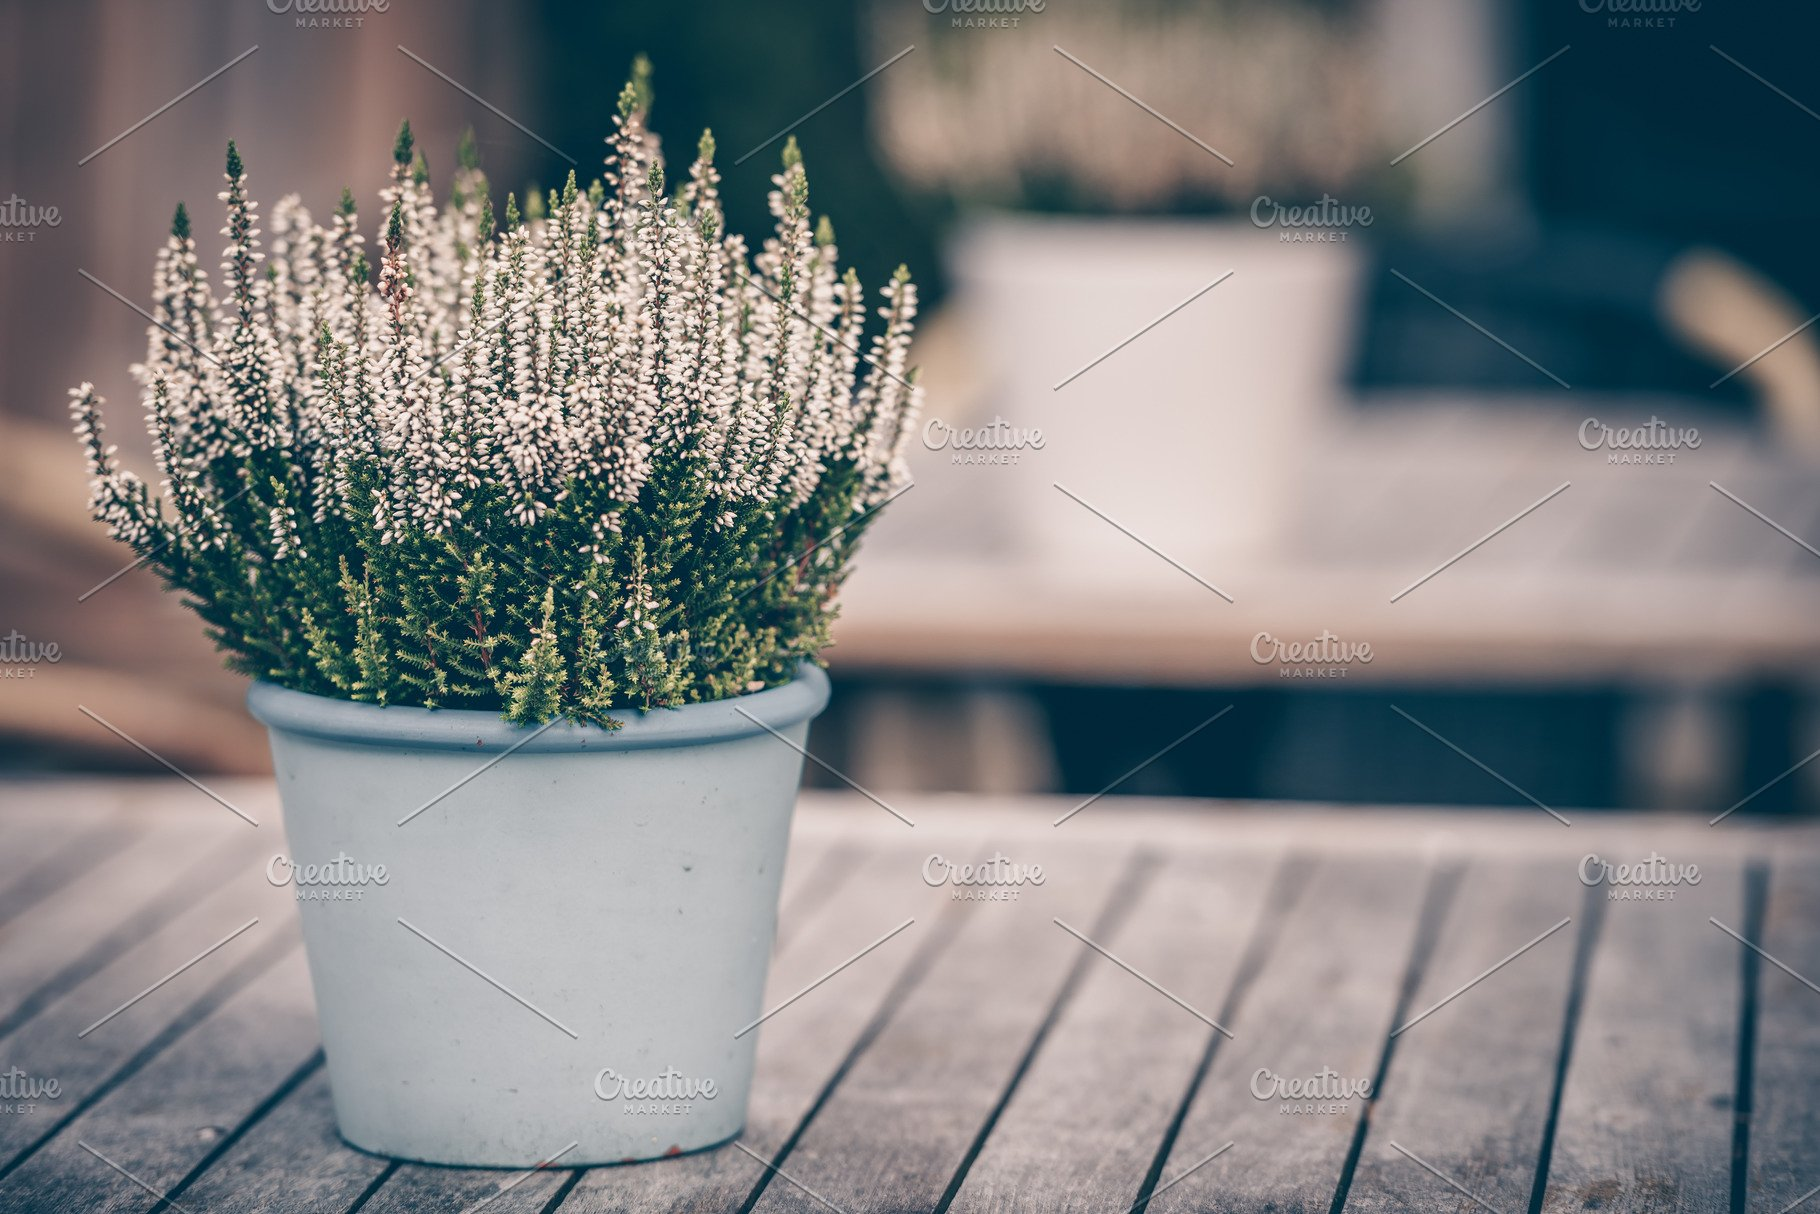 Potted White Heather Flowers Nature Photos Creative Market Pro